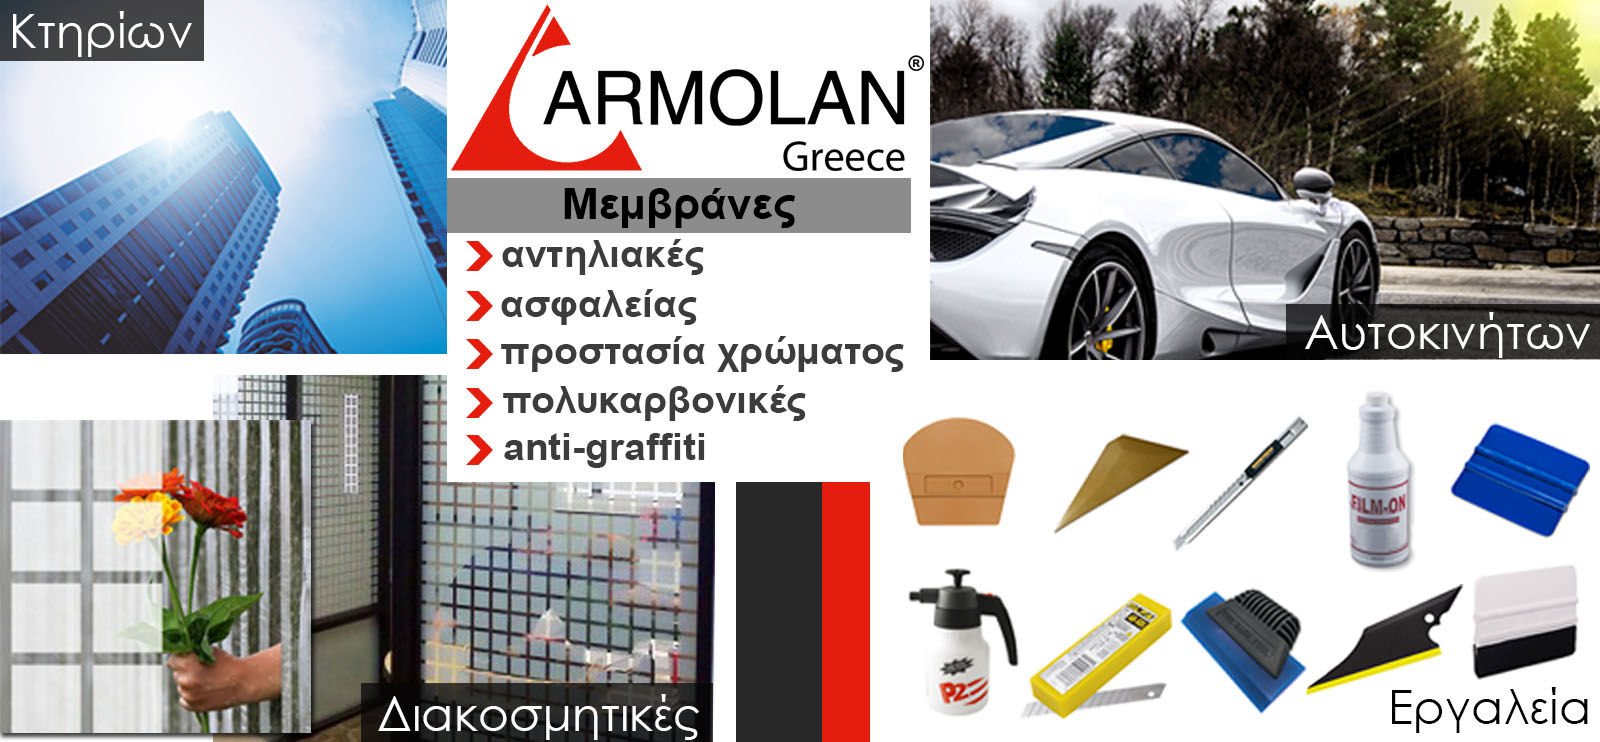 Armolan Greece